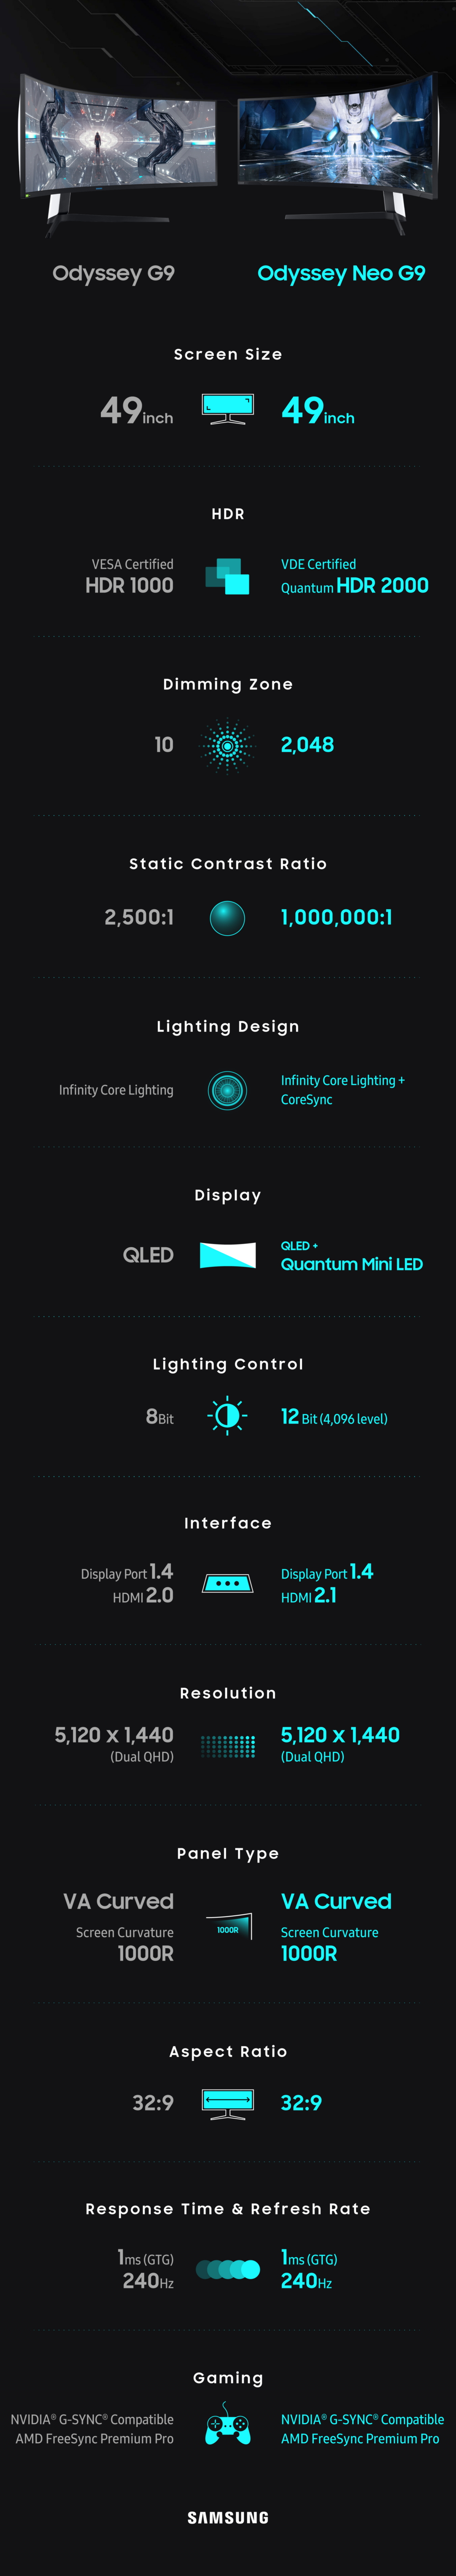 Samsung Odyssey Neo G9 Features Infographics